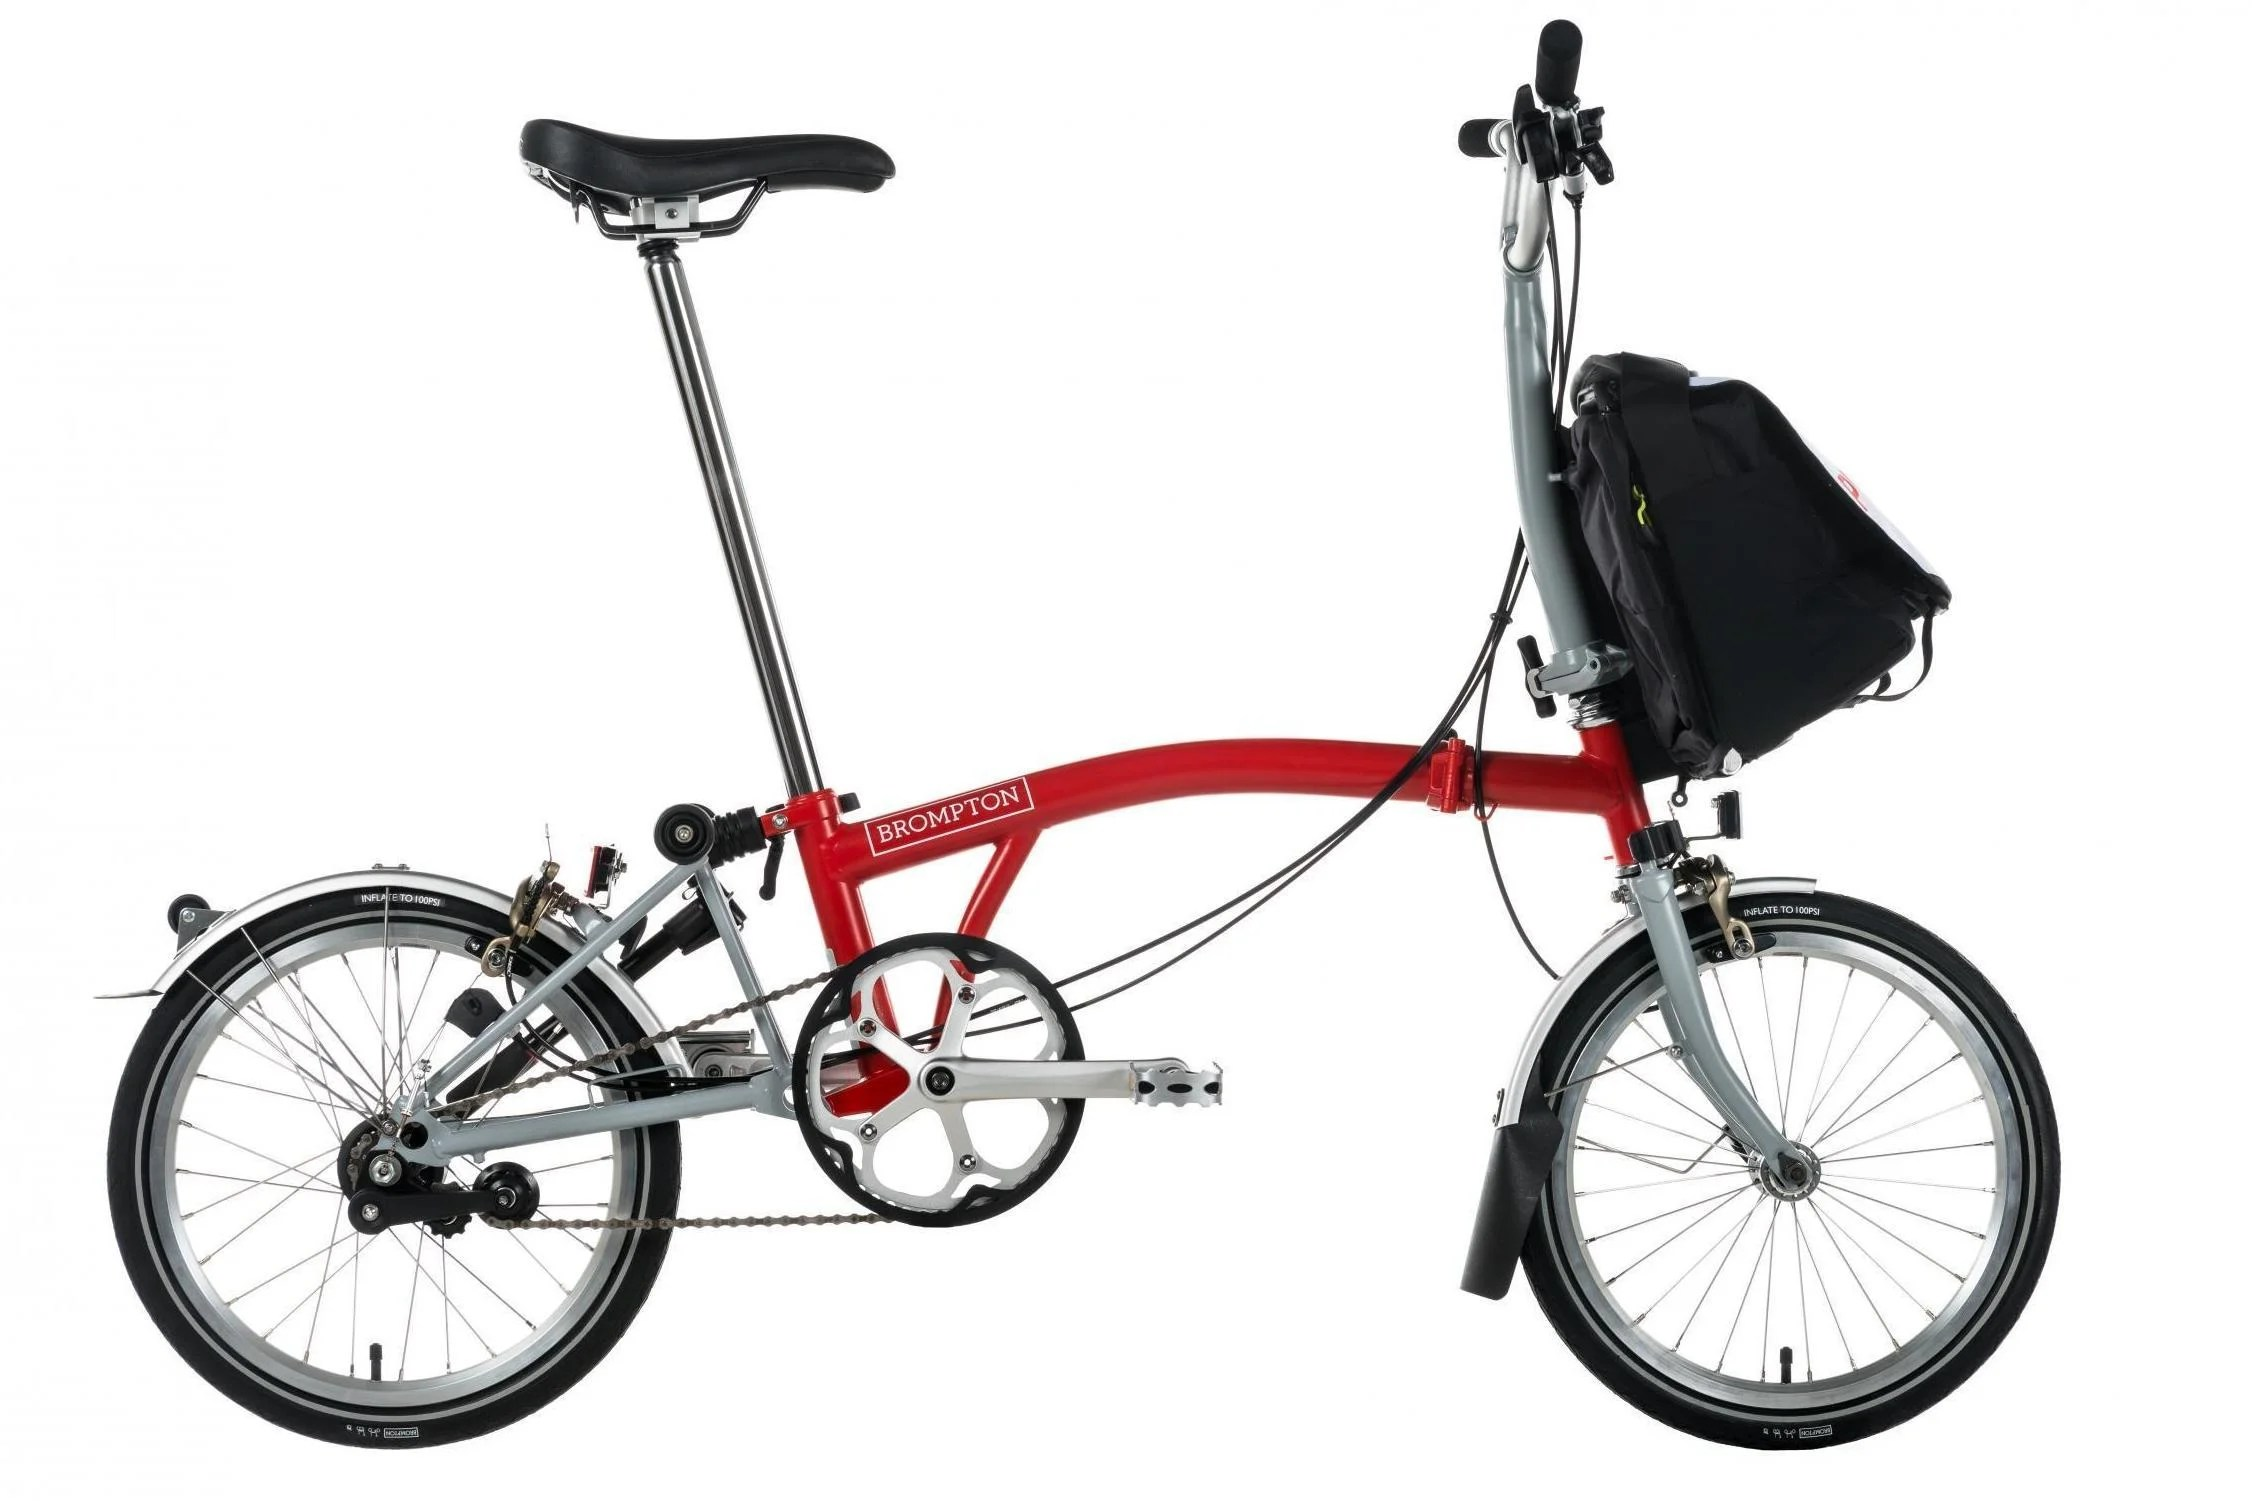 Brompton Bikes Thousands Of Brompton Folding Bikes Recalled Over Safety Fears